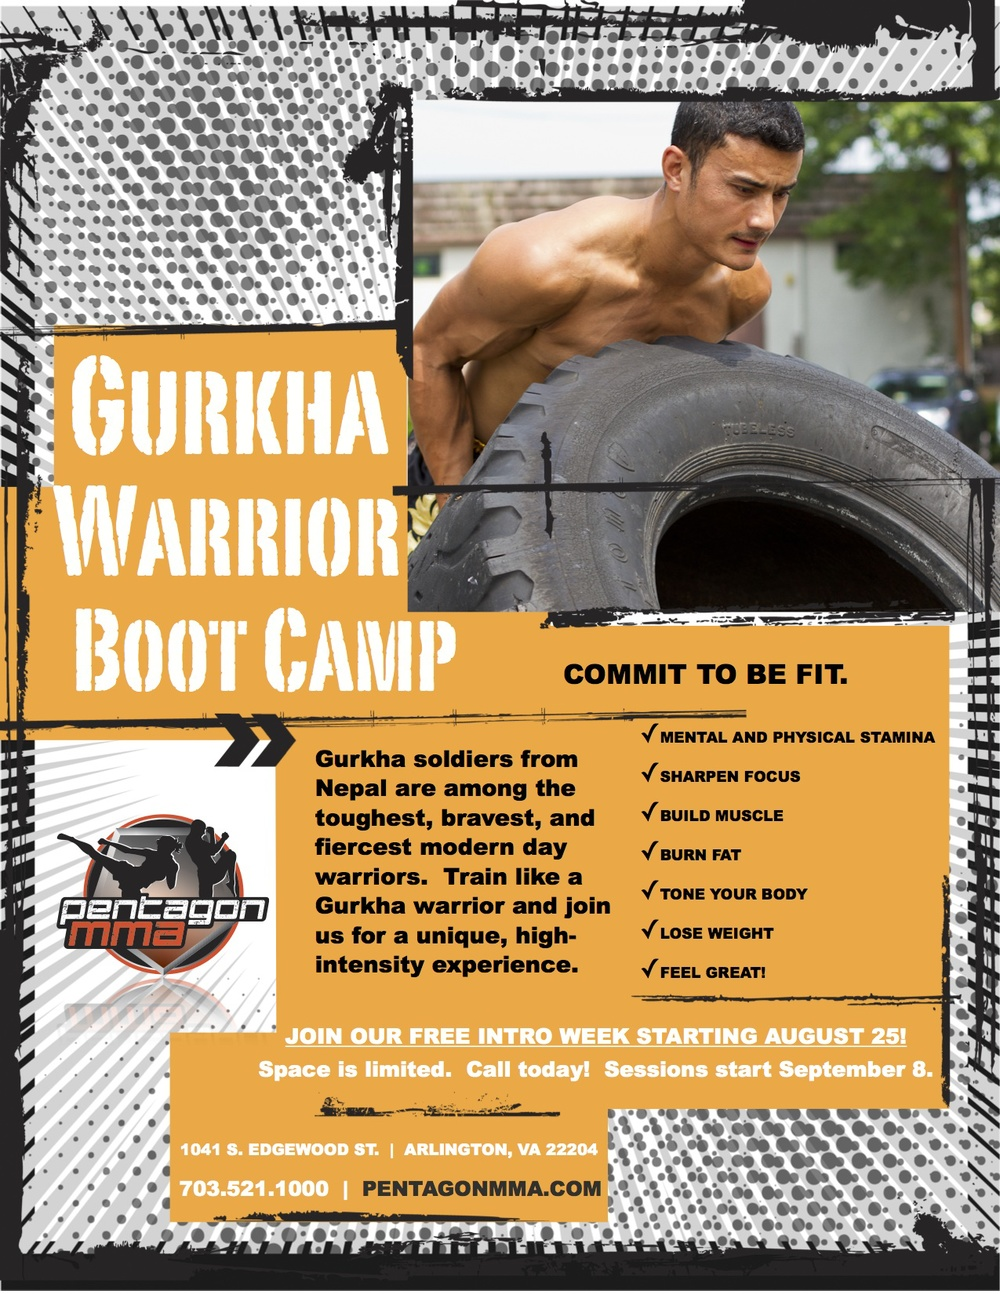 Gurkha Warrior Boot Camp